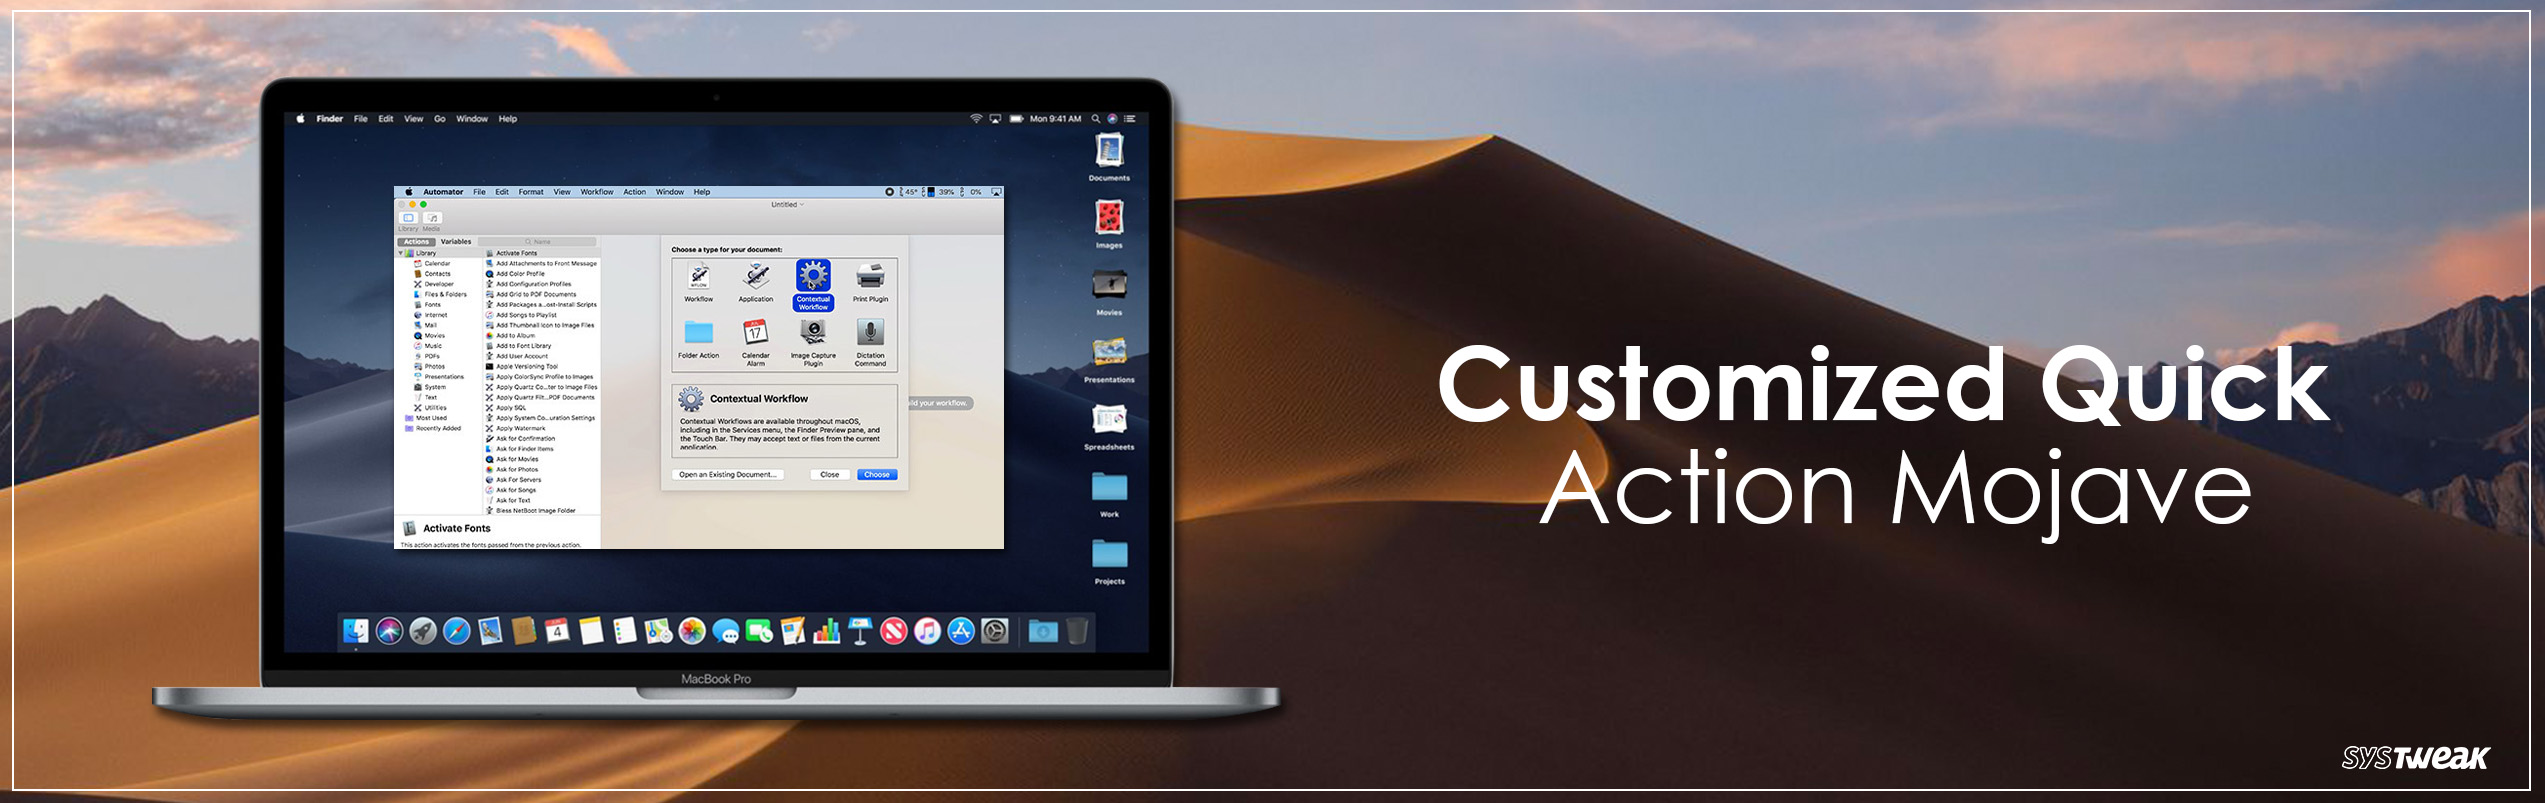 How To Build A Customized Quick Action In MacOS Mojave